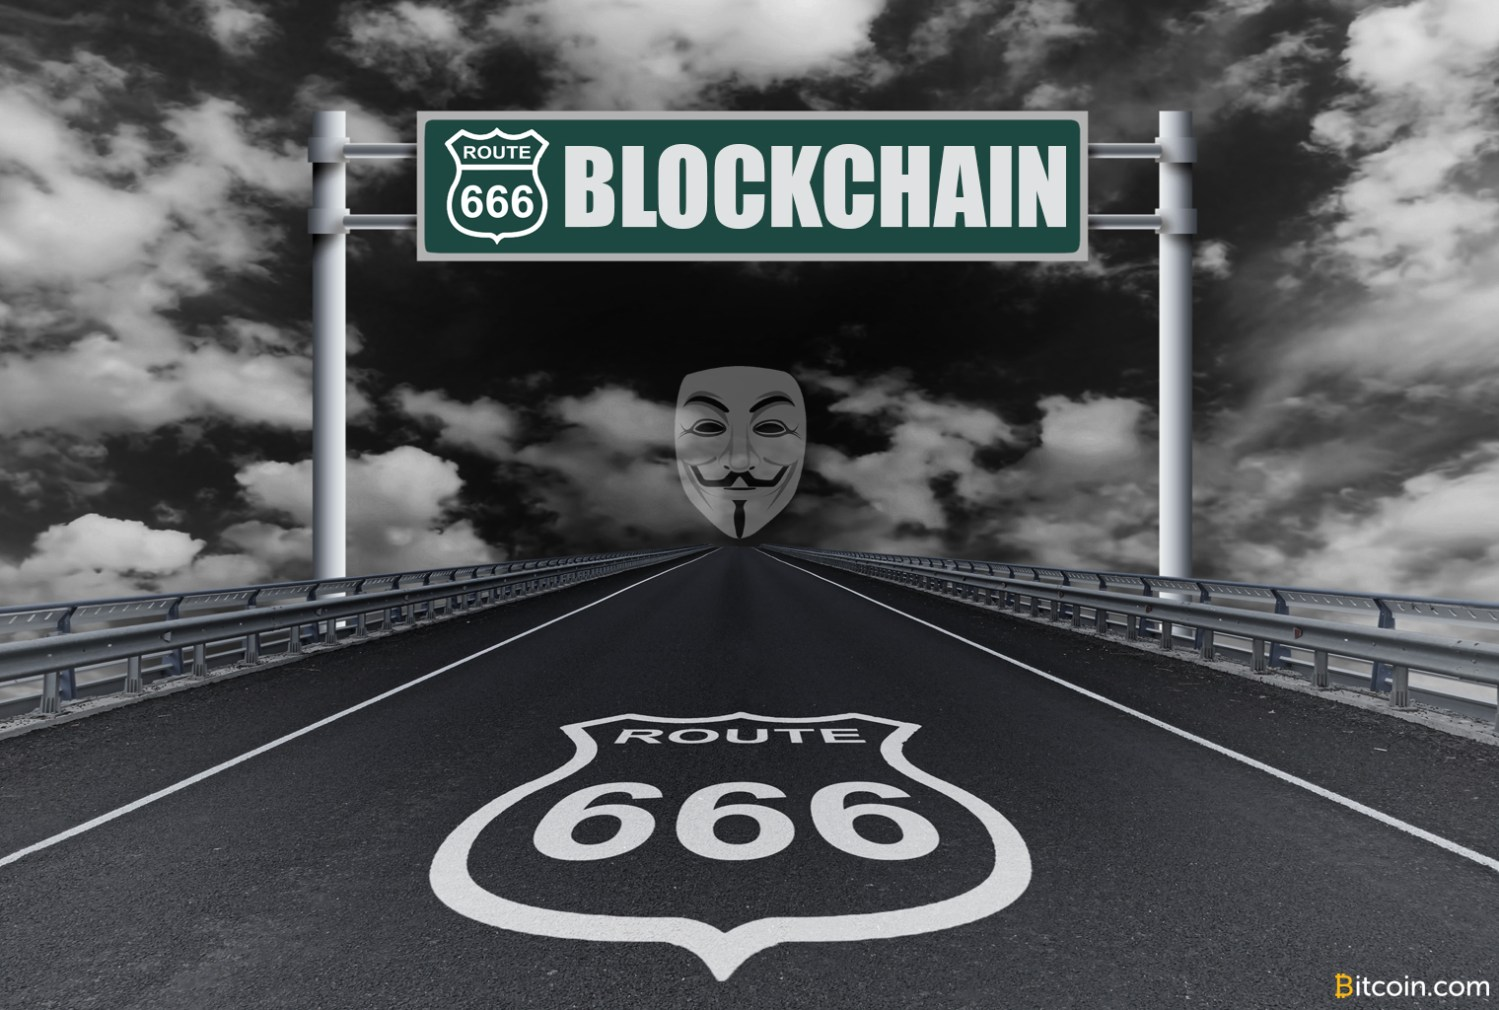 ac766708cbb The race to file blockchain patents has accelerated lately with one  specific firm